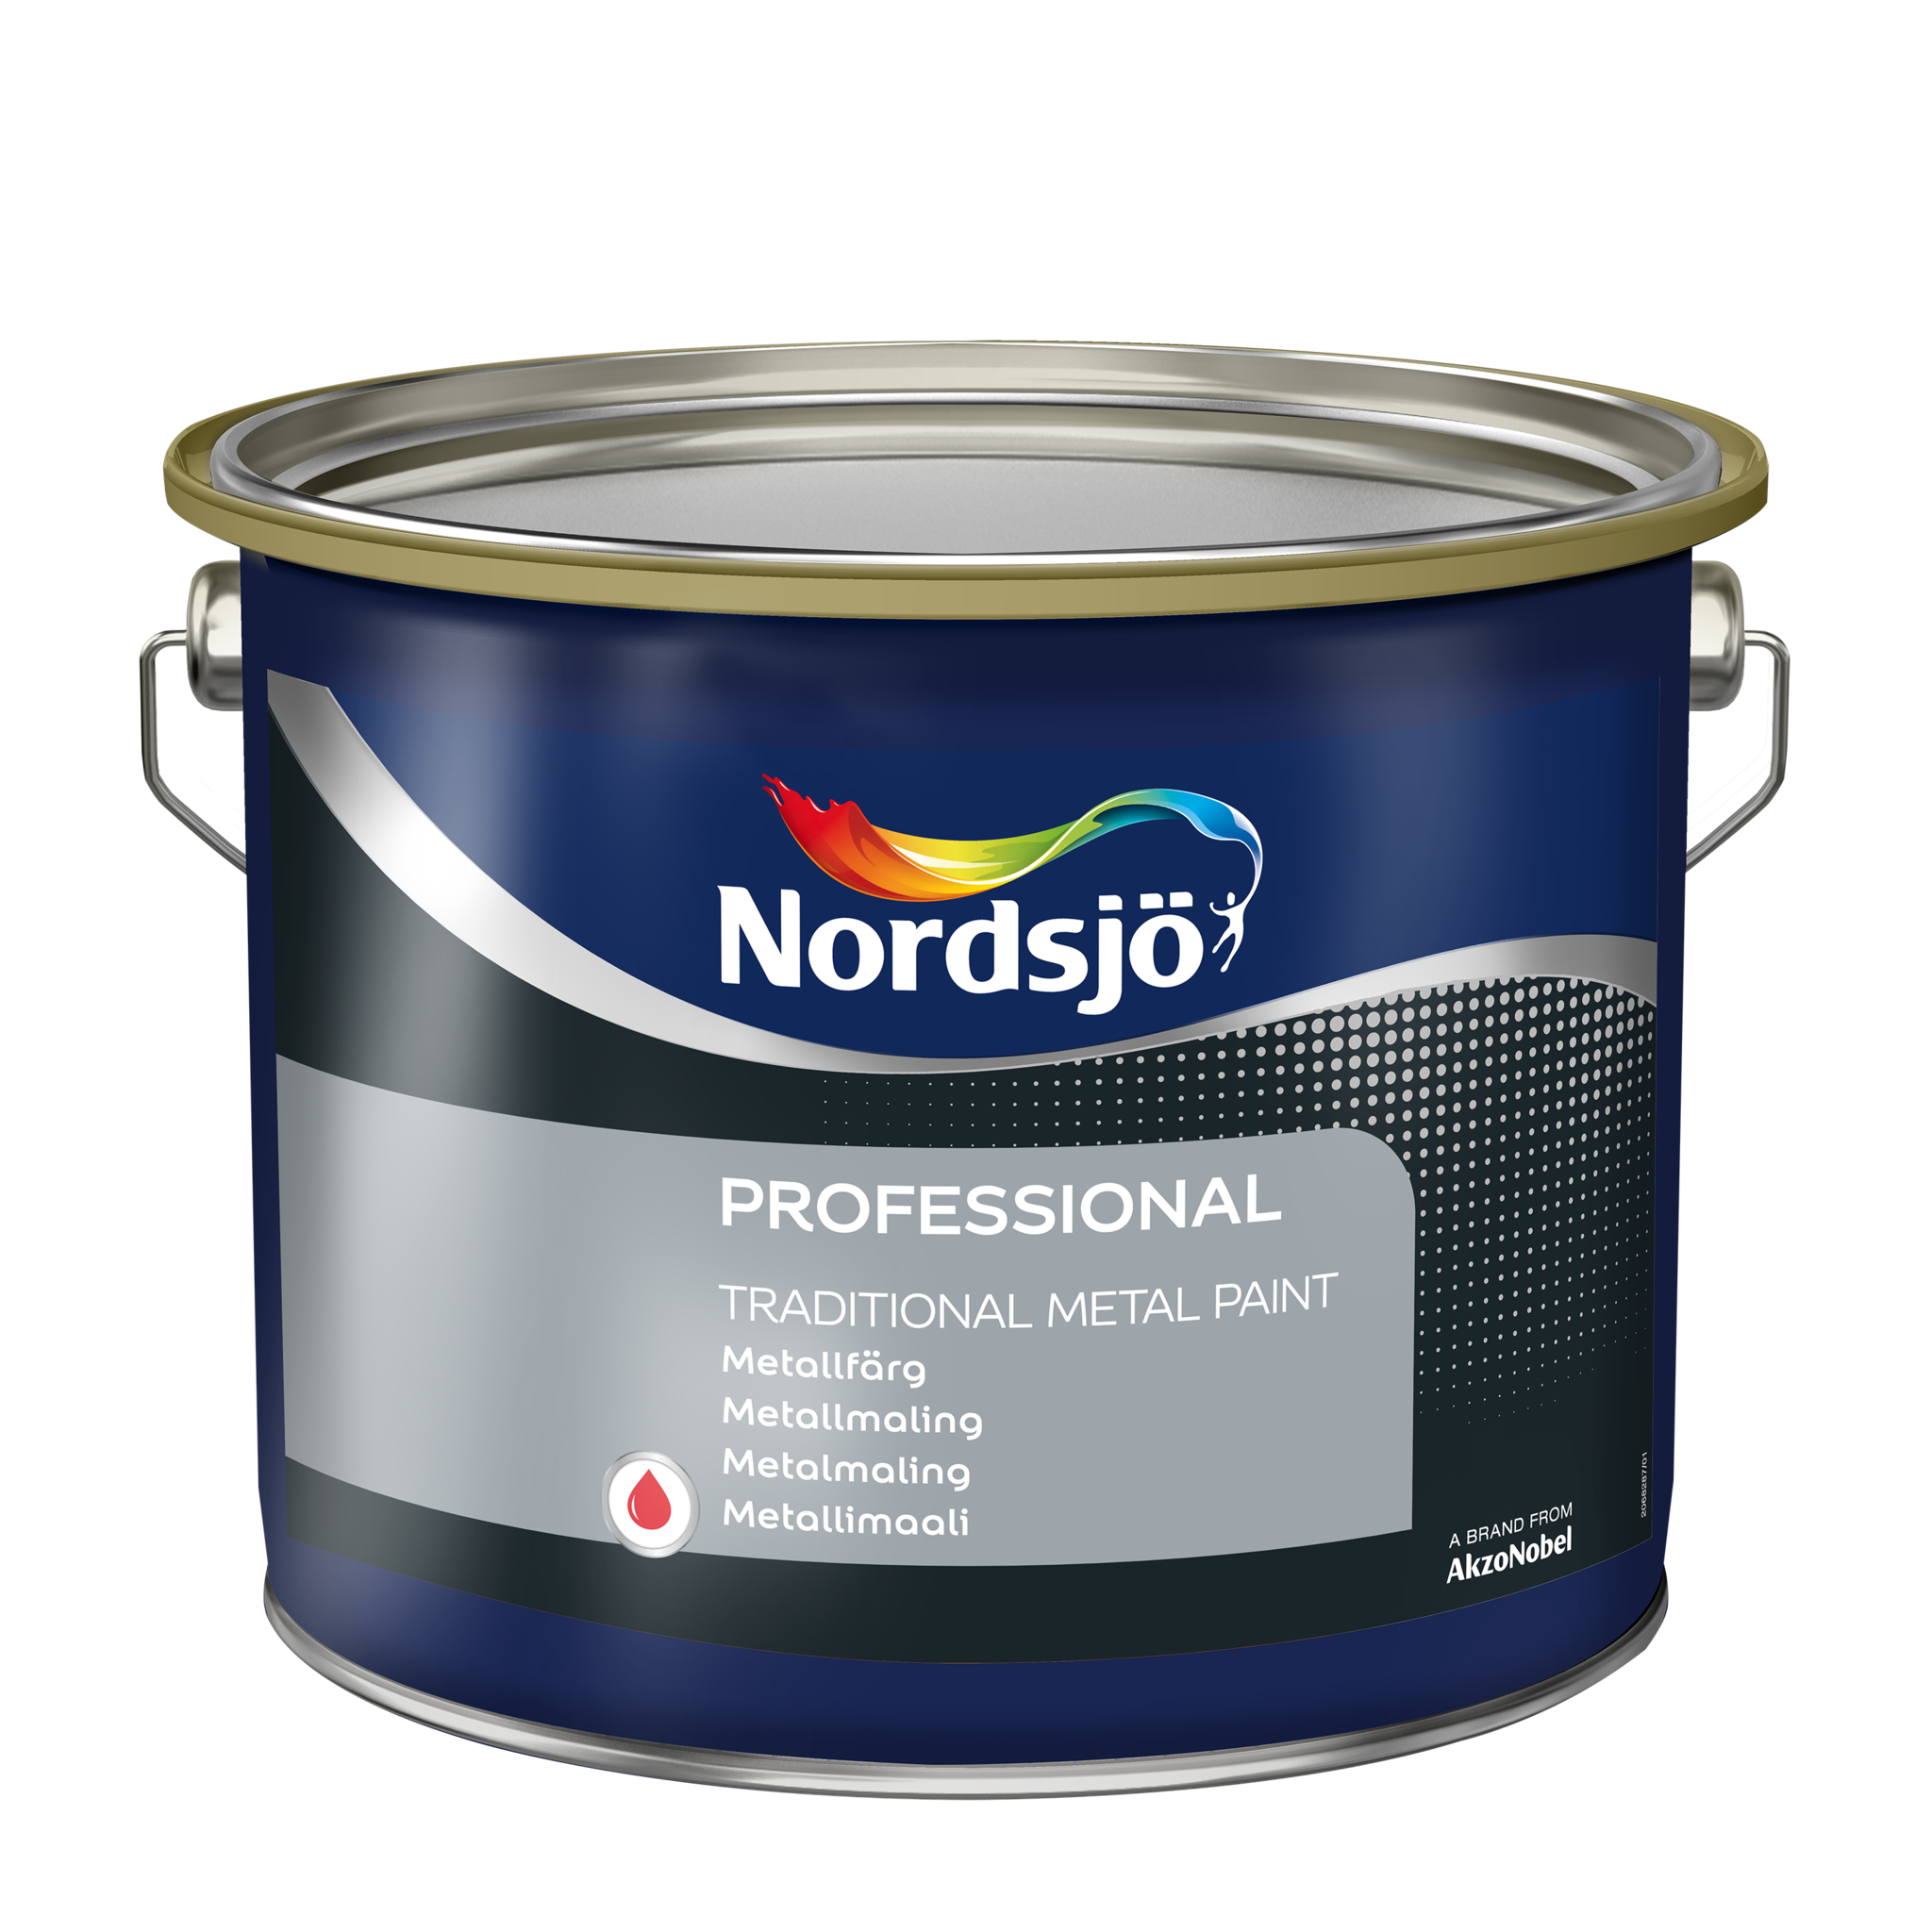 Nordsjö Professional Traditional Metal Paint